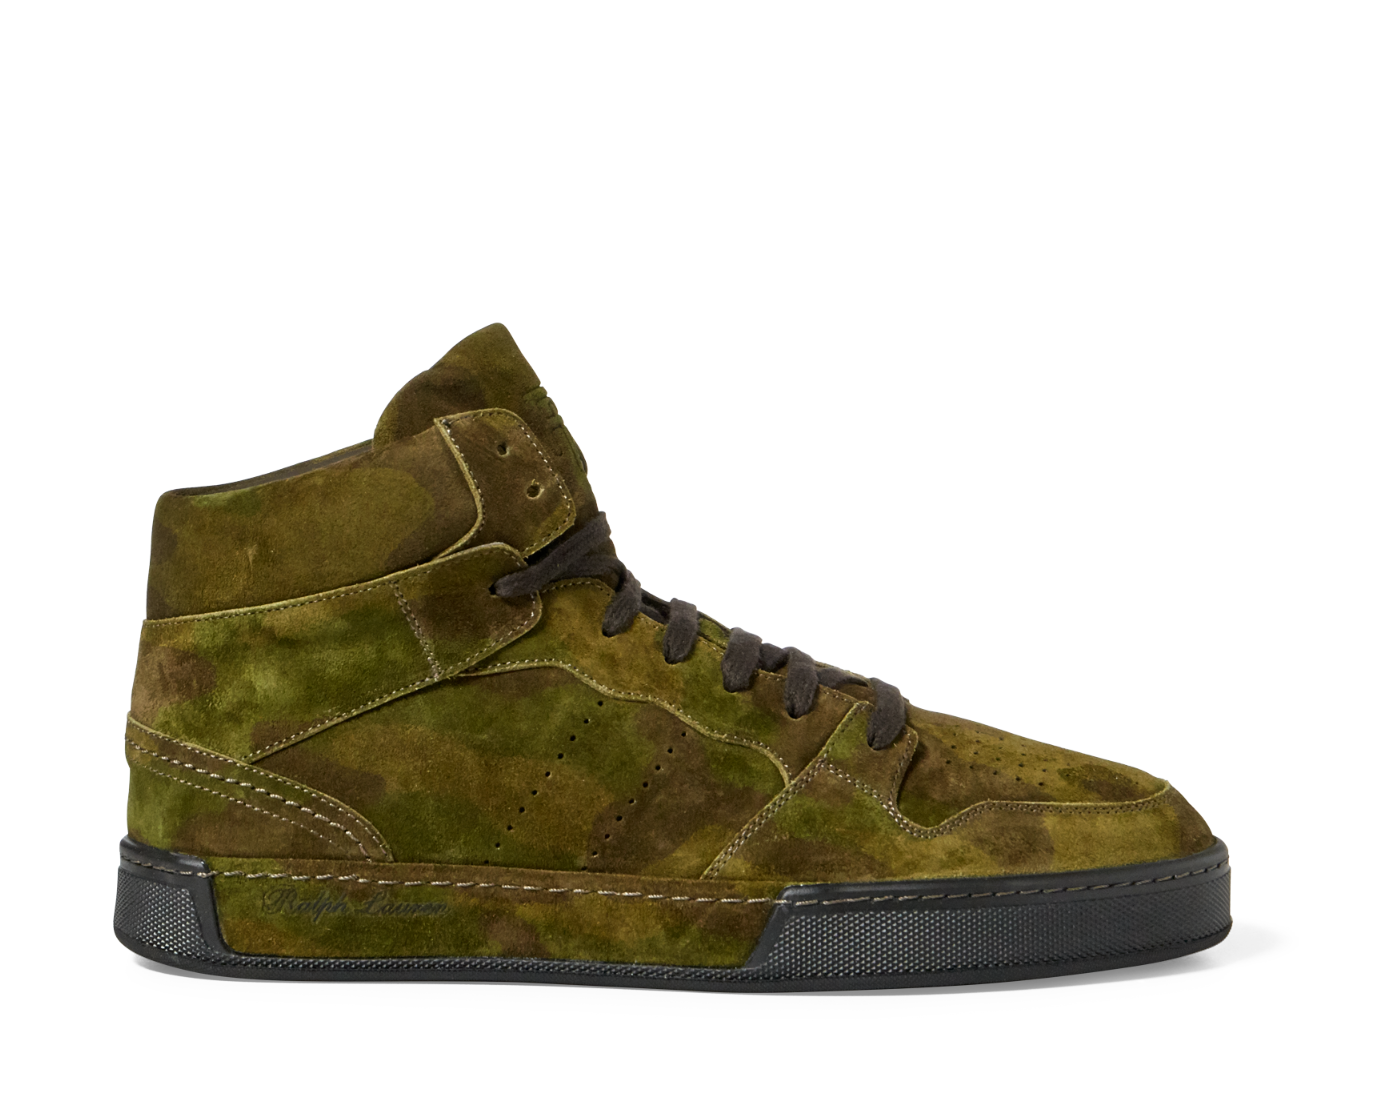 Scarpe casual da uomo  Ralph Lauren Purple Label Giancarlo Suede Leather Camo Sneakers New $850